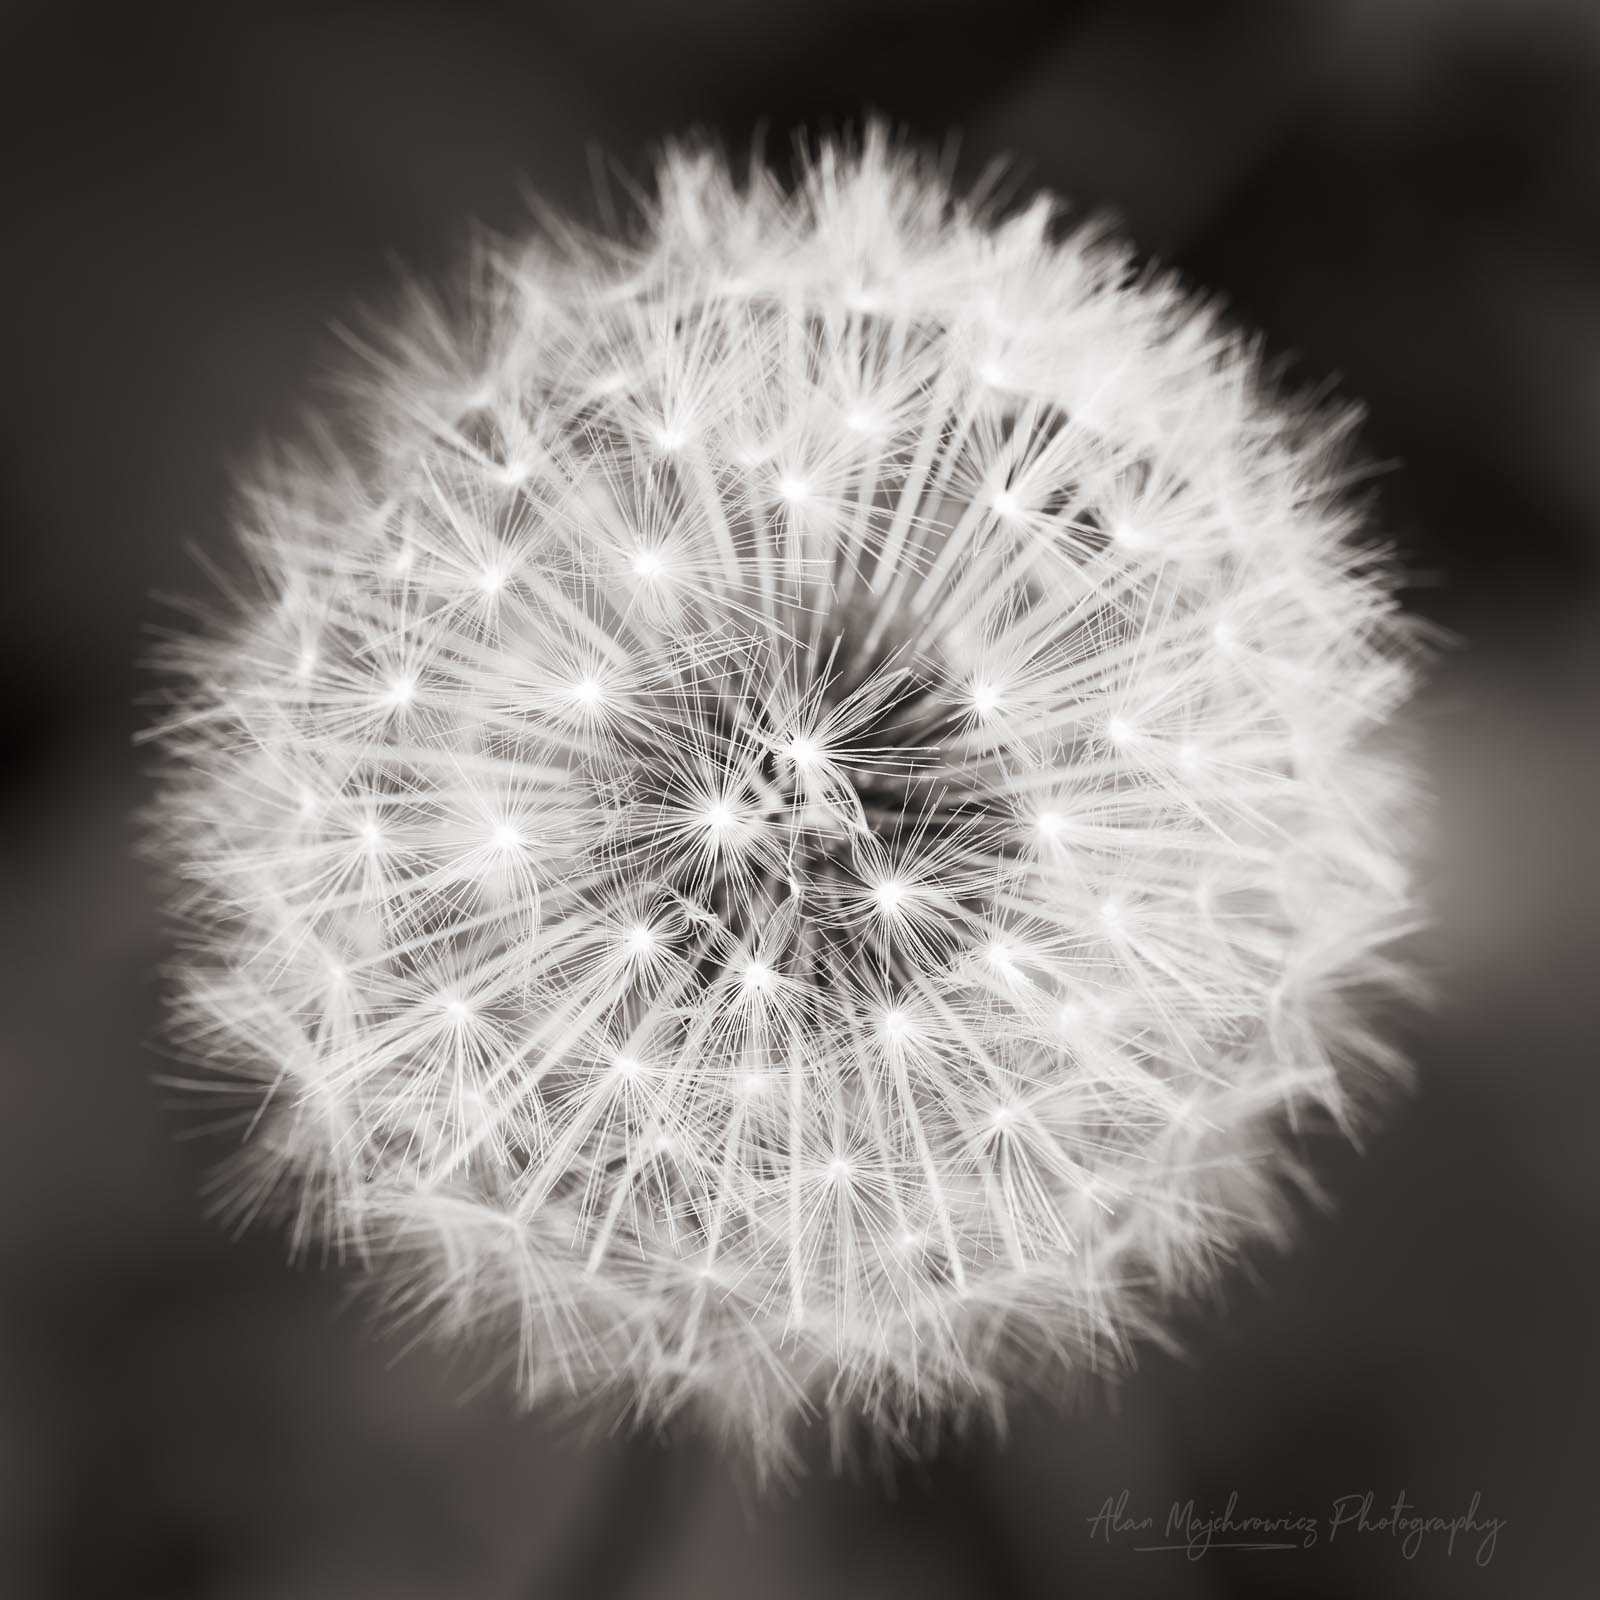 Dandelion seed head BW Photo Highlights 2018